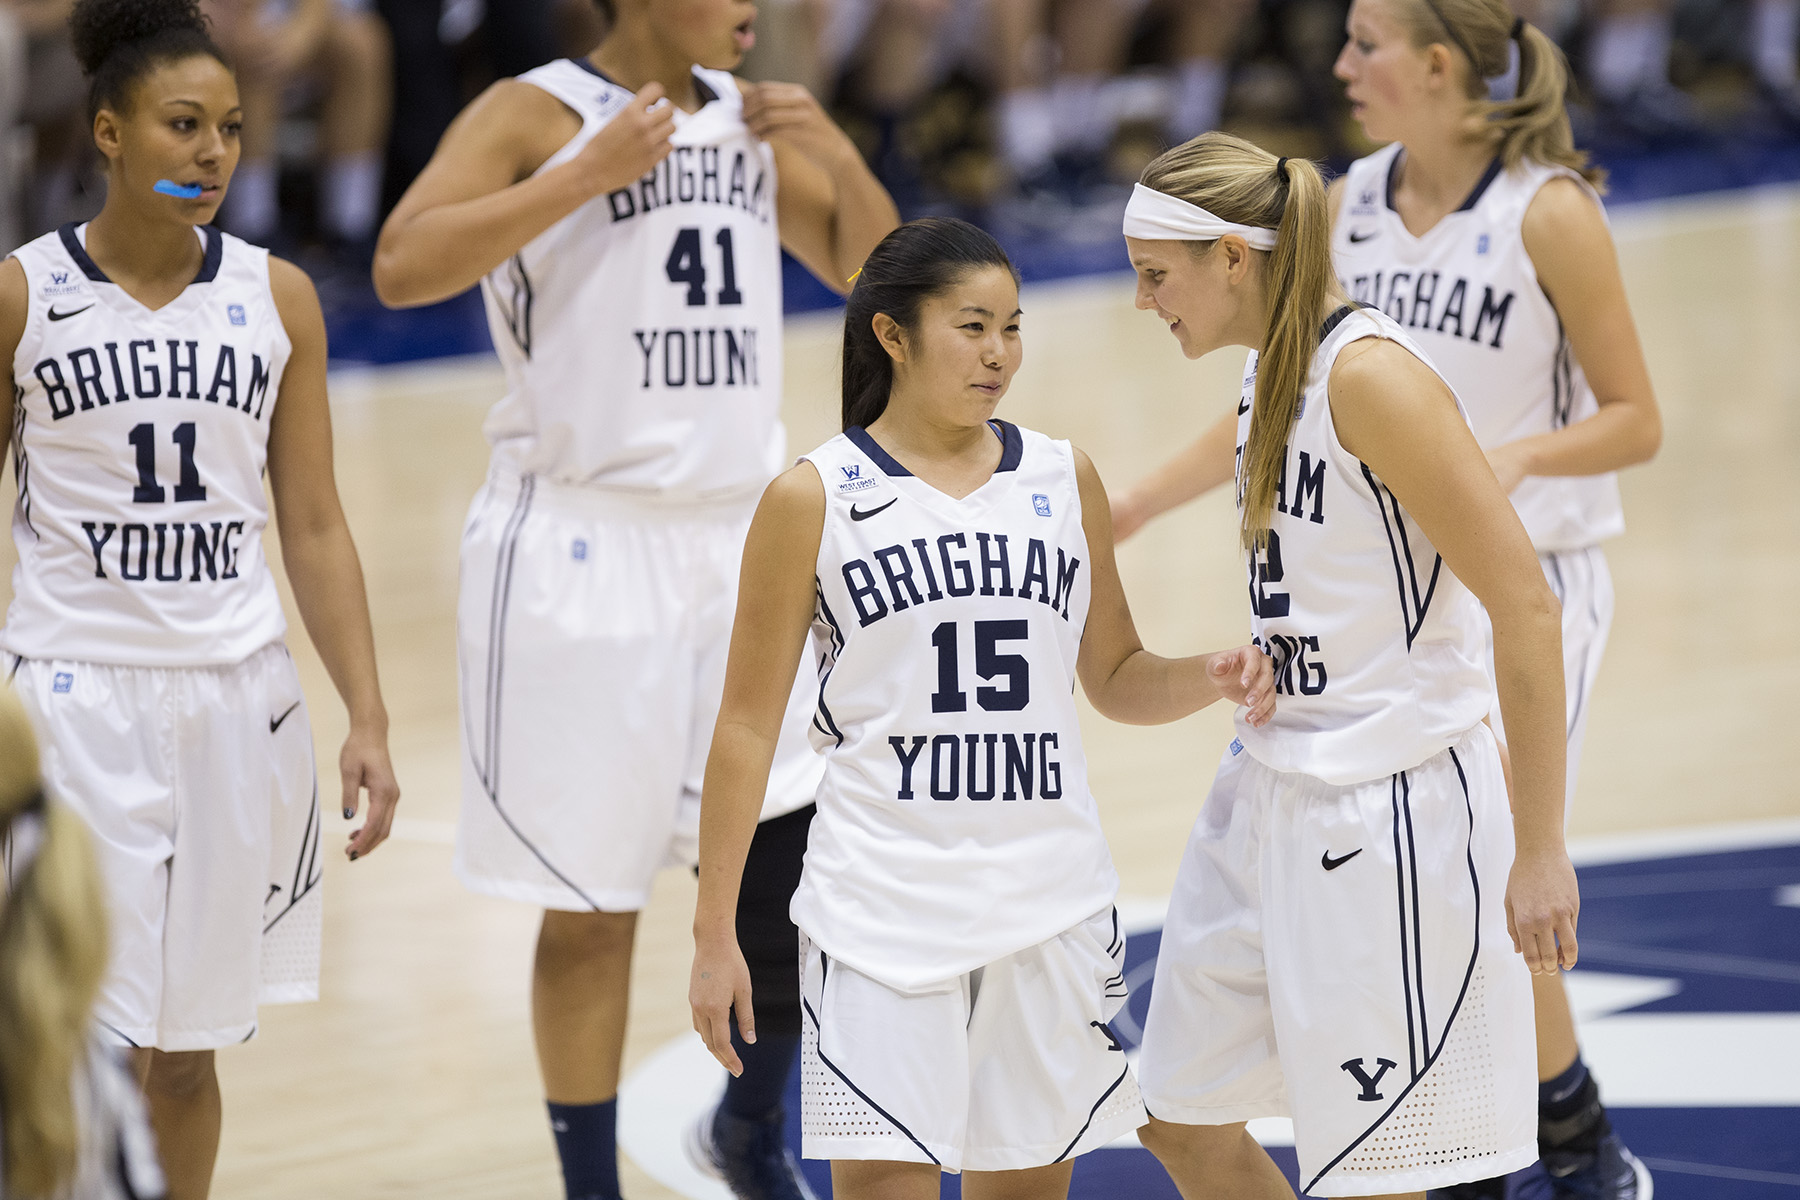 The BYU women's basketball team comes together after a play in the first exhibition game against Chadron State. (Photo courtesy BYU Photo)